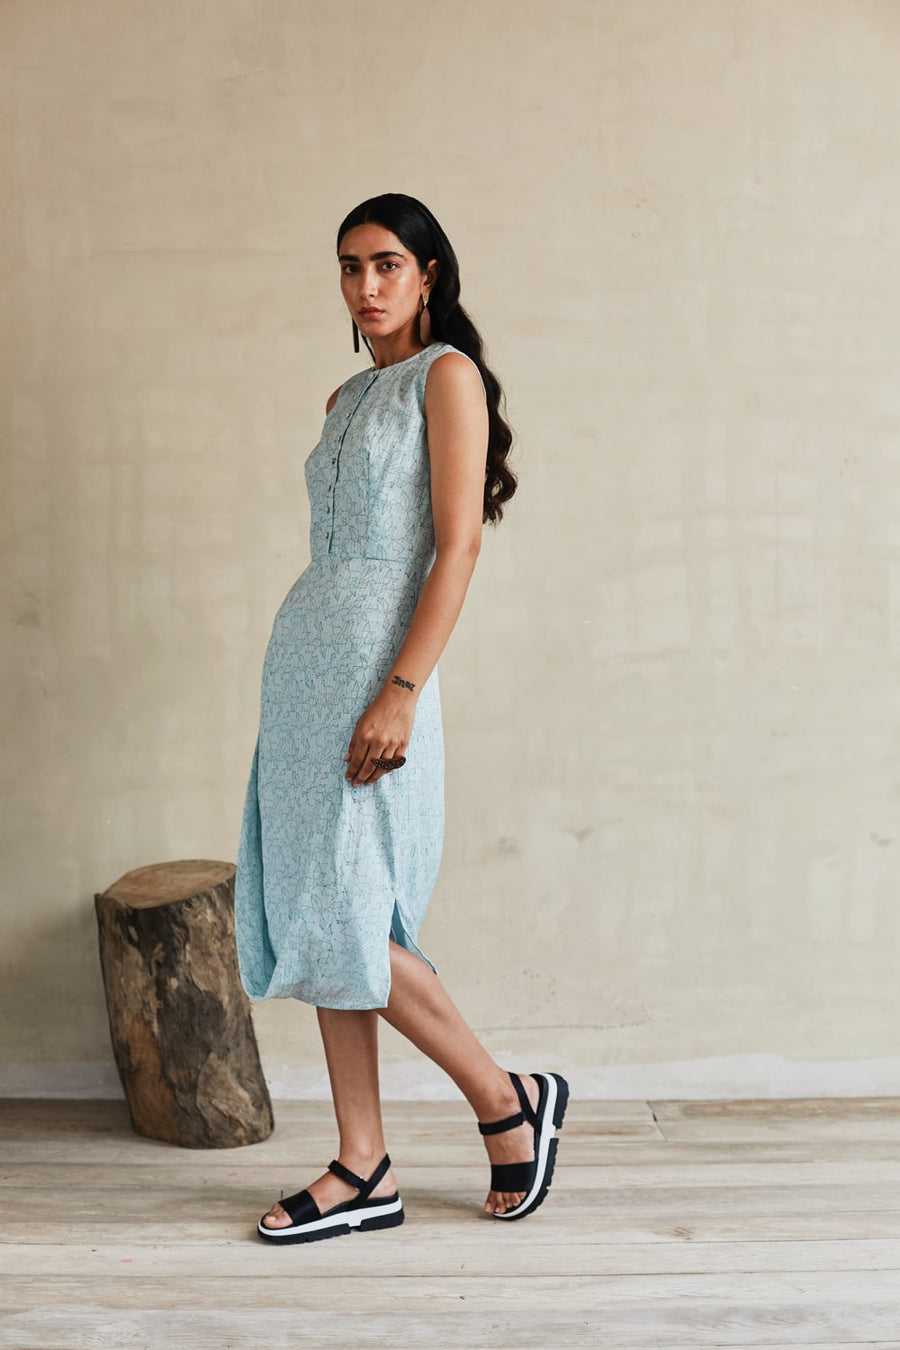 Flowy River Draped Dress - Ethical made fashion - onlyethikal